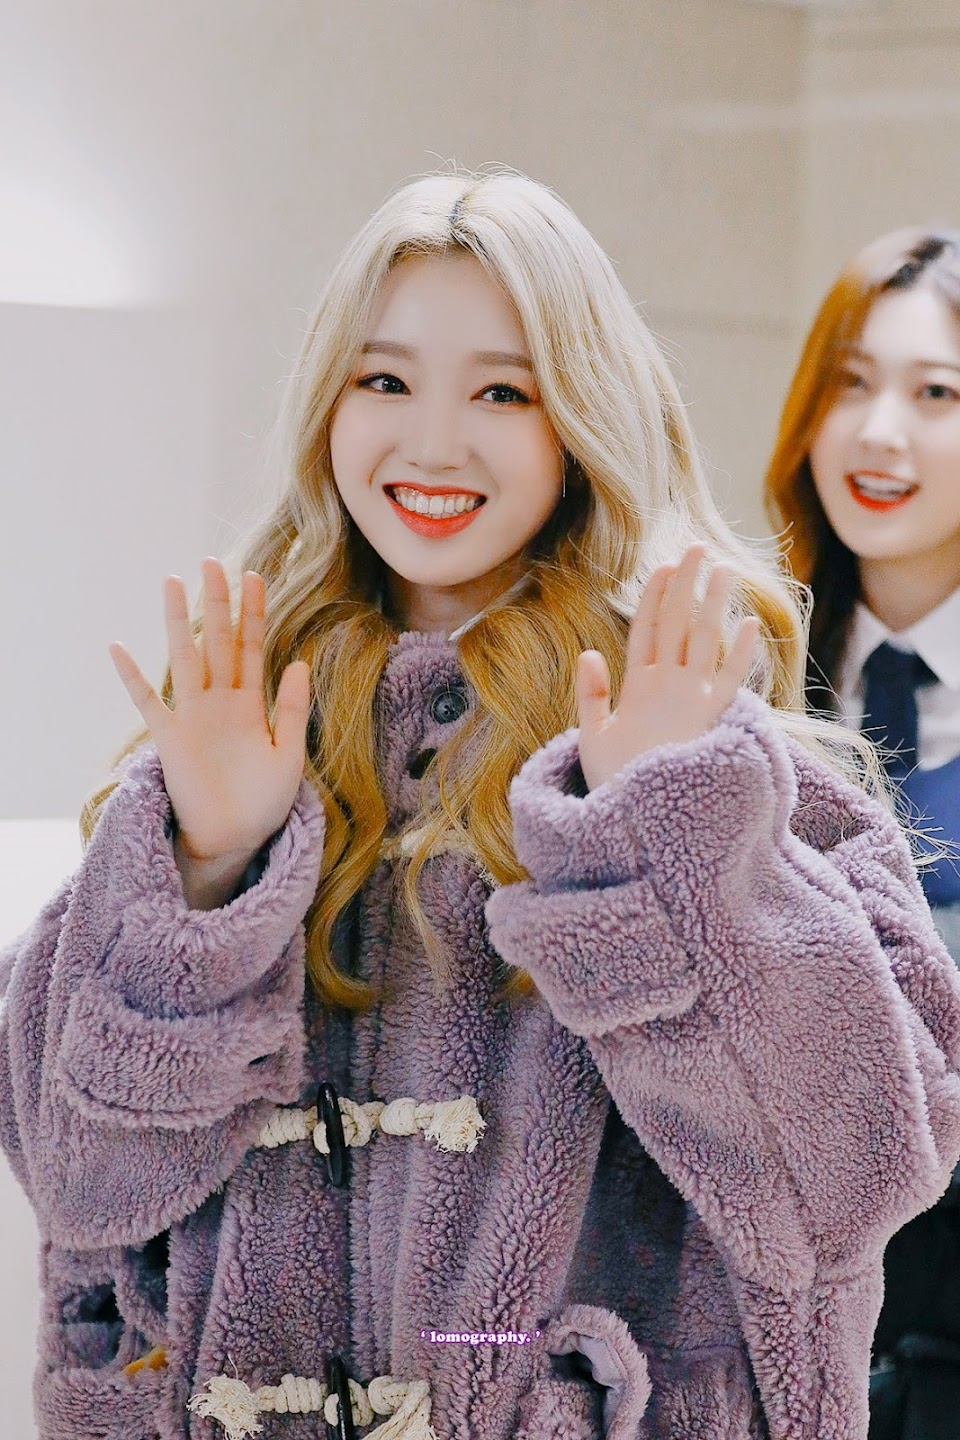 gowon loona